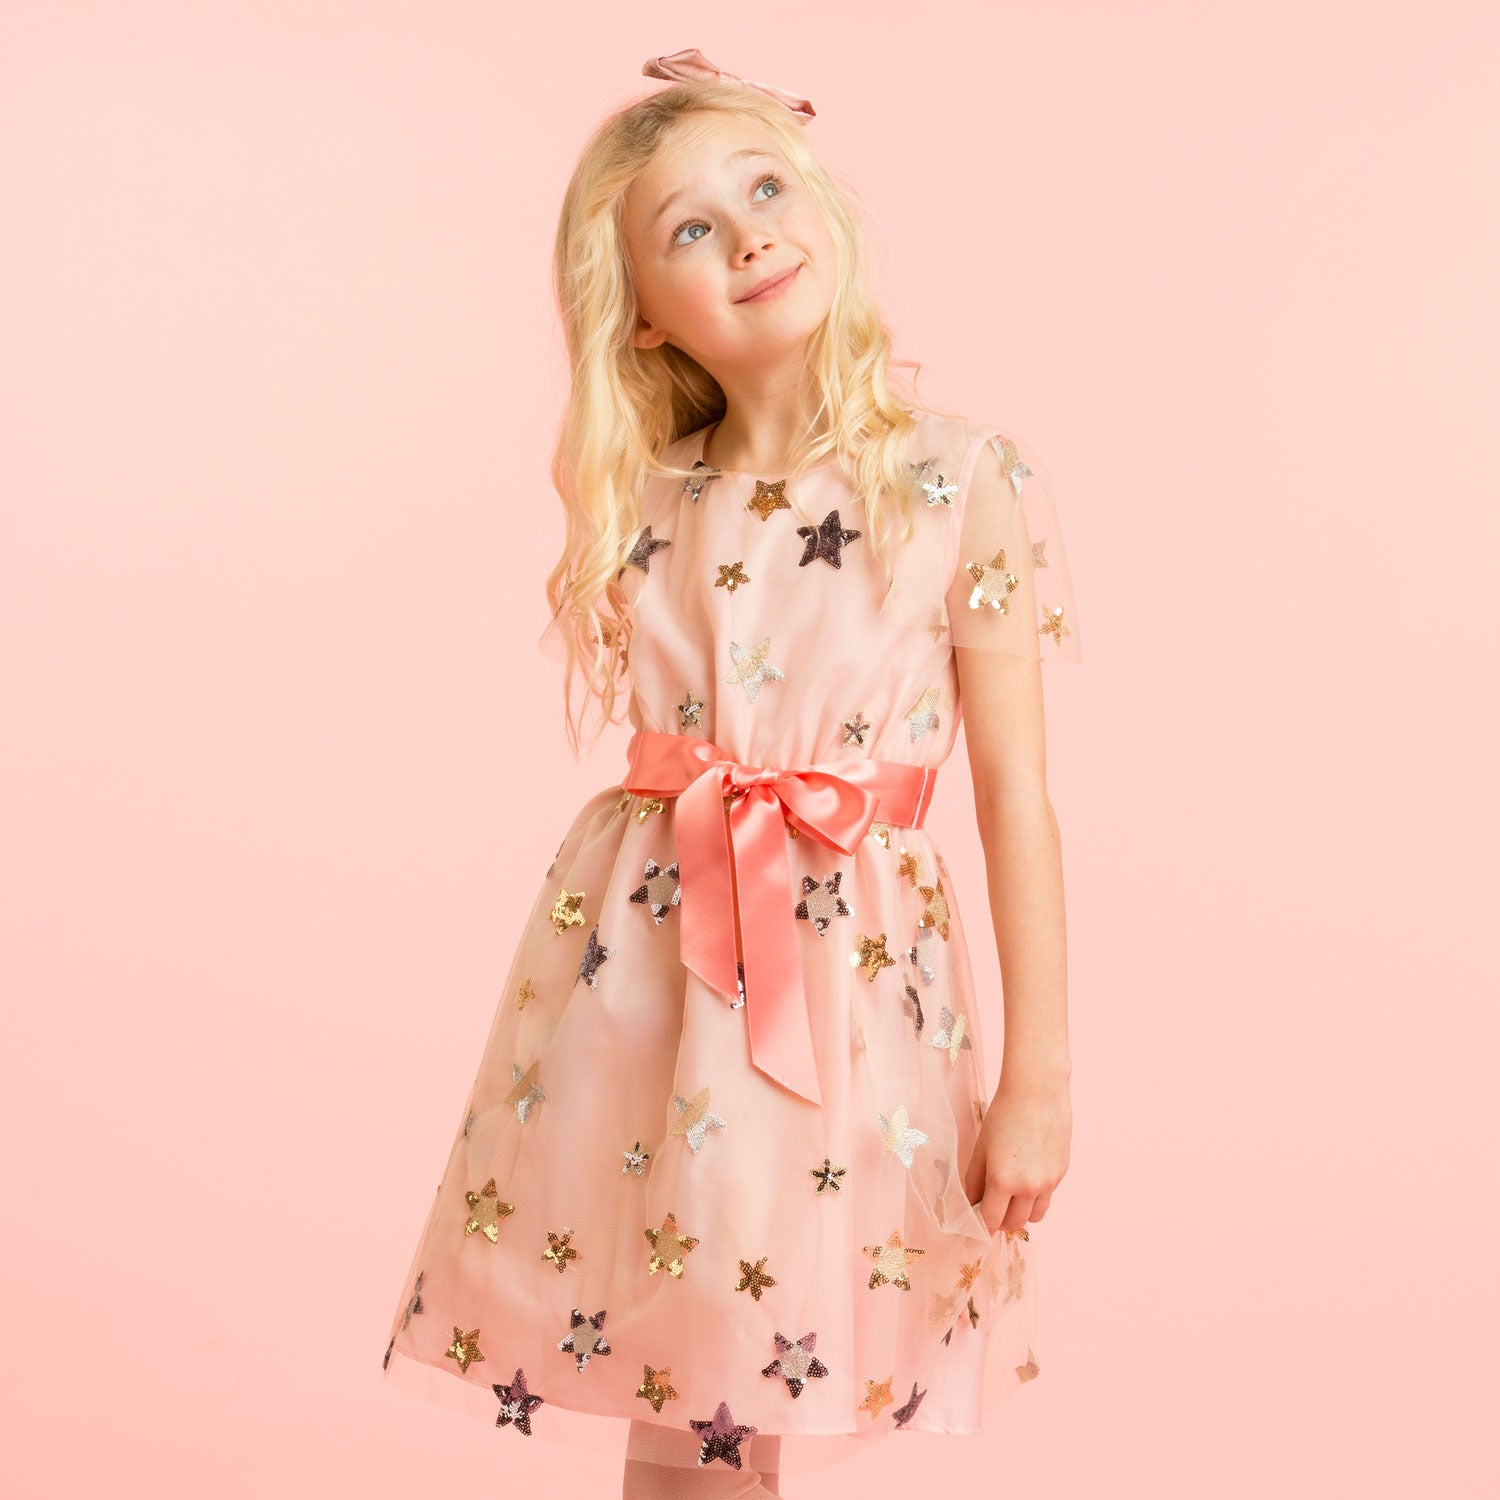 HOLLY HASTIE Girls Designer Pale Pink Embroidered Star Dress